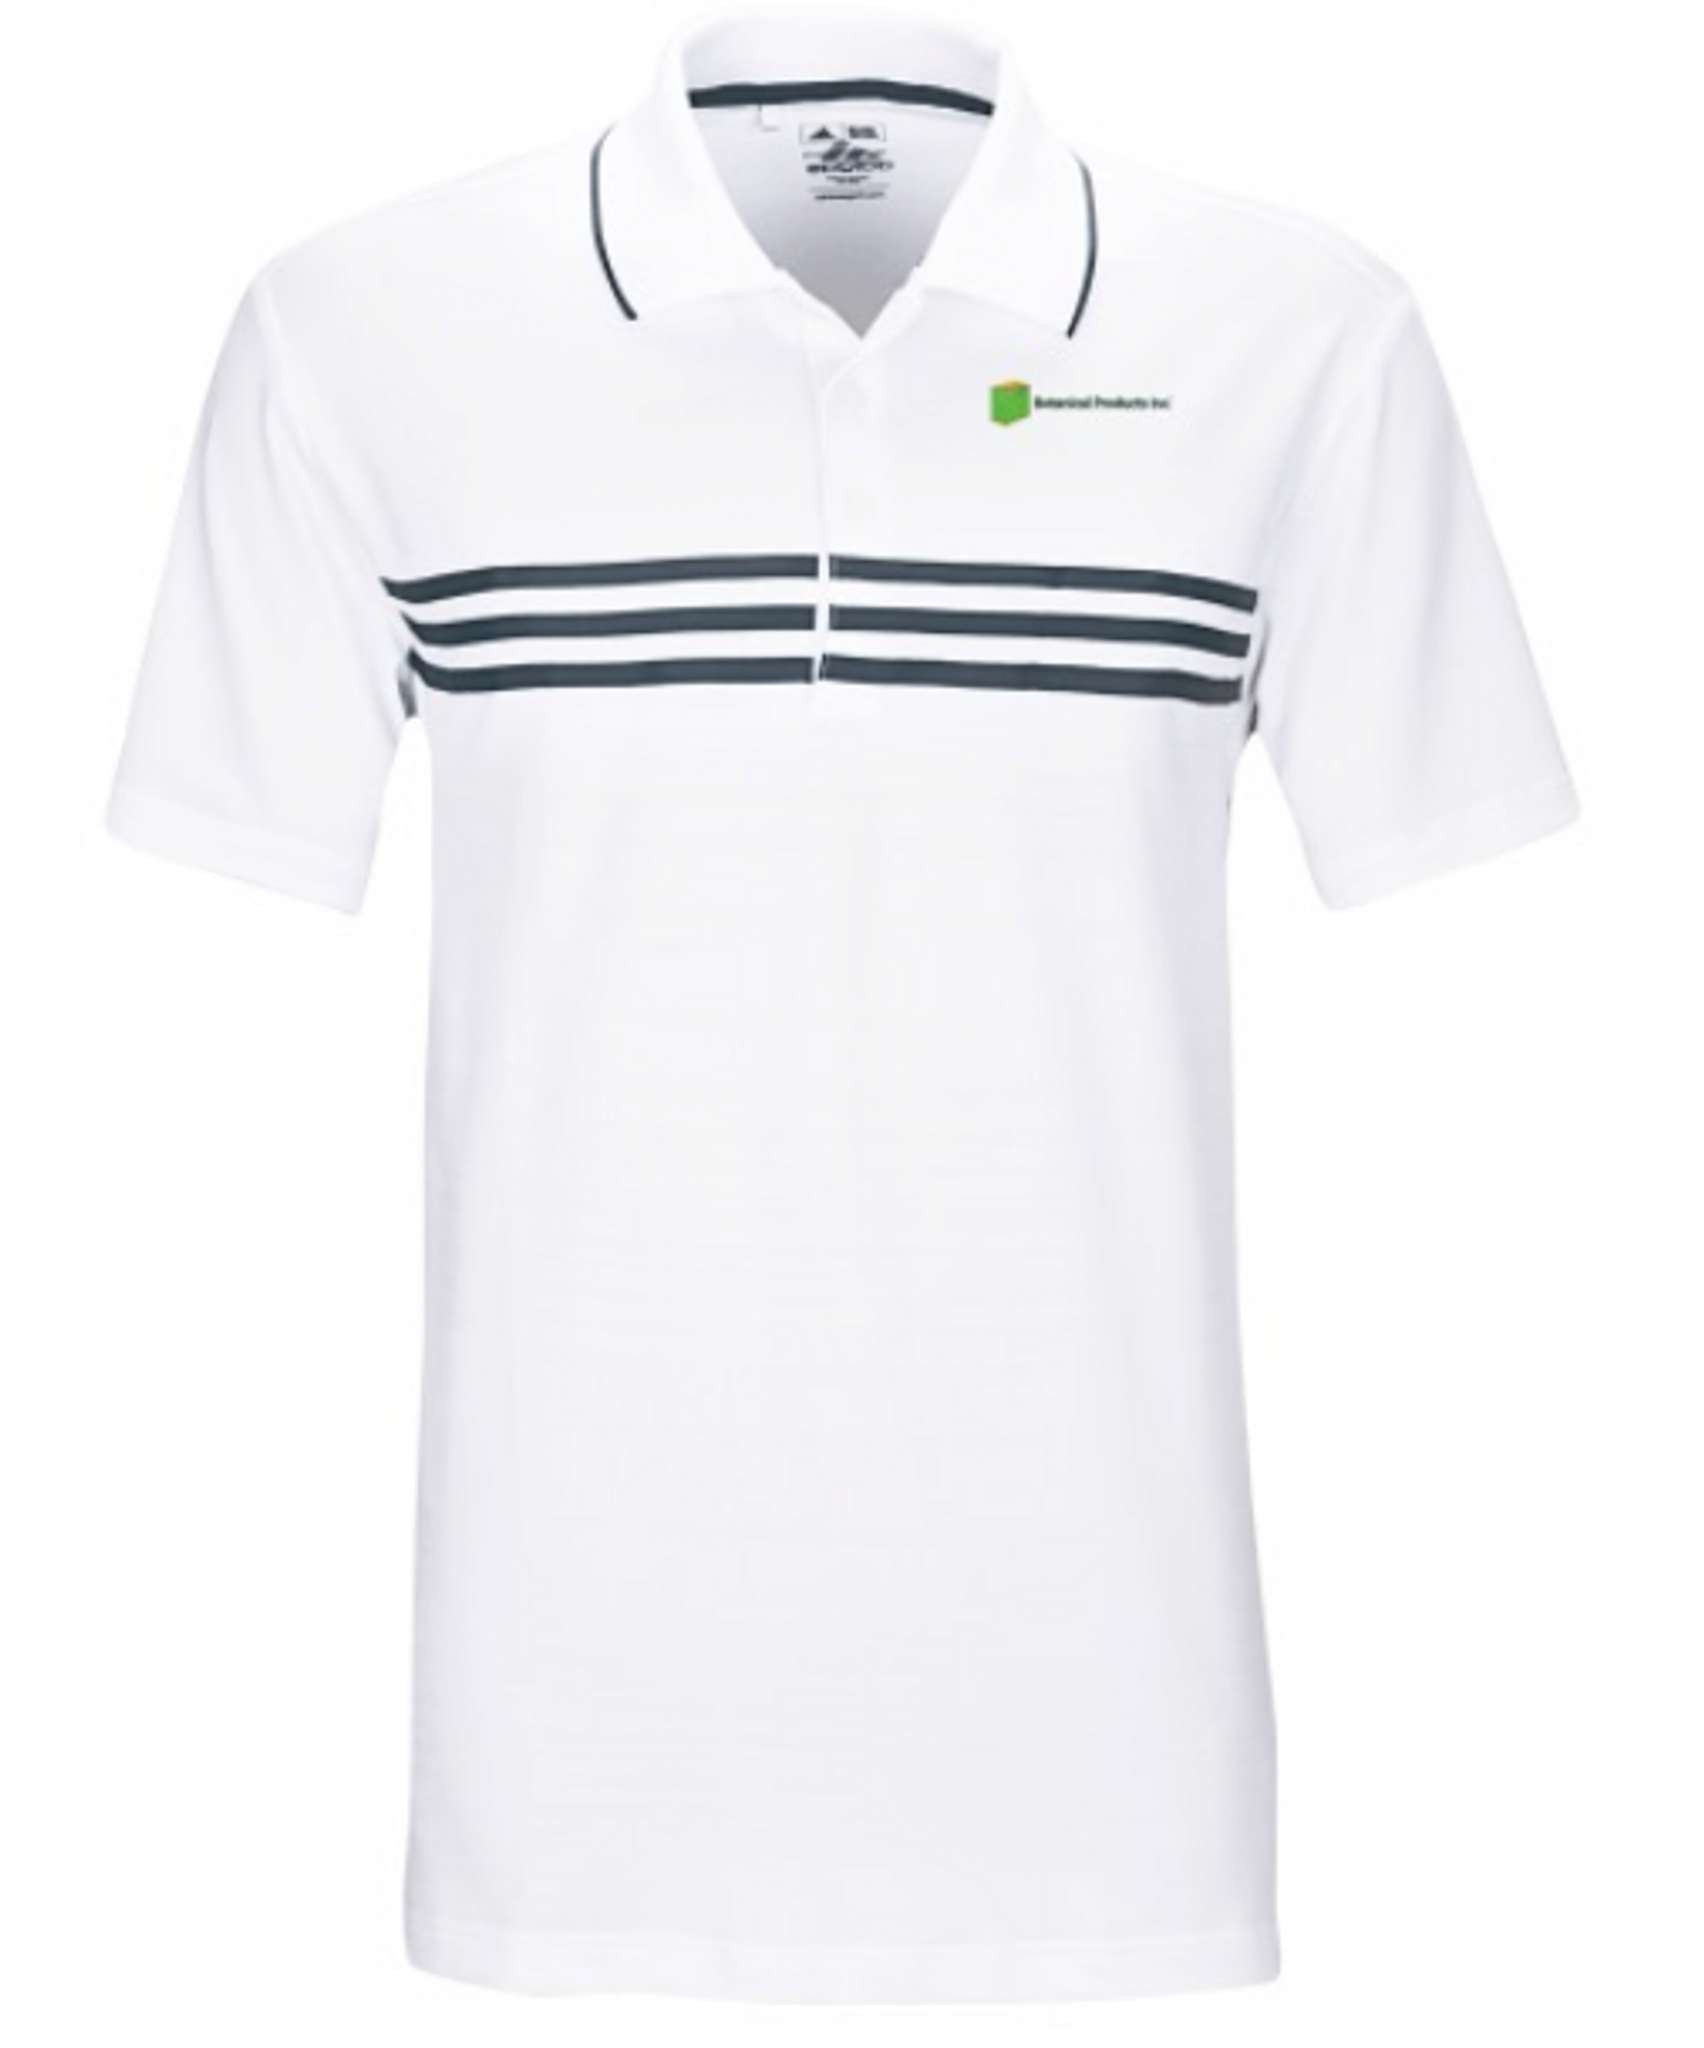 adidas polo for embroidery